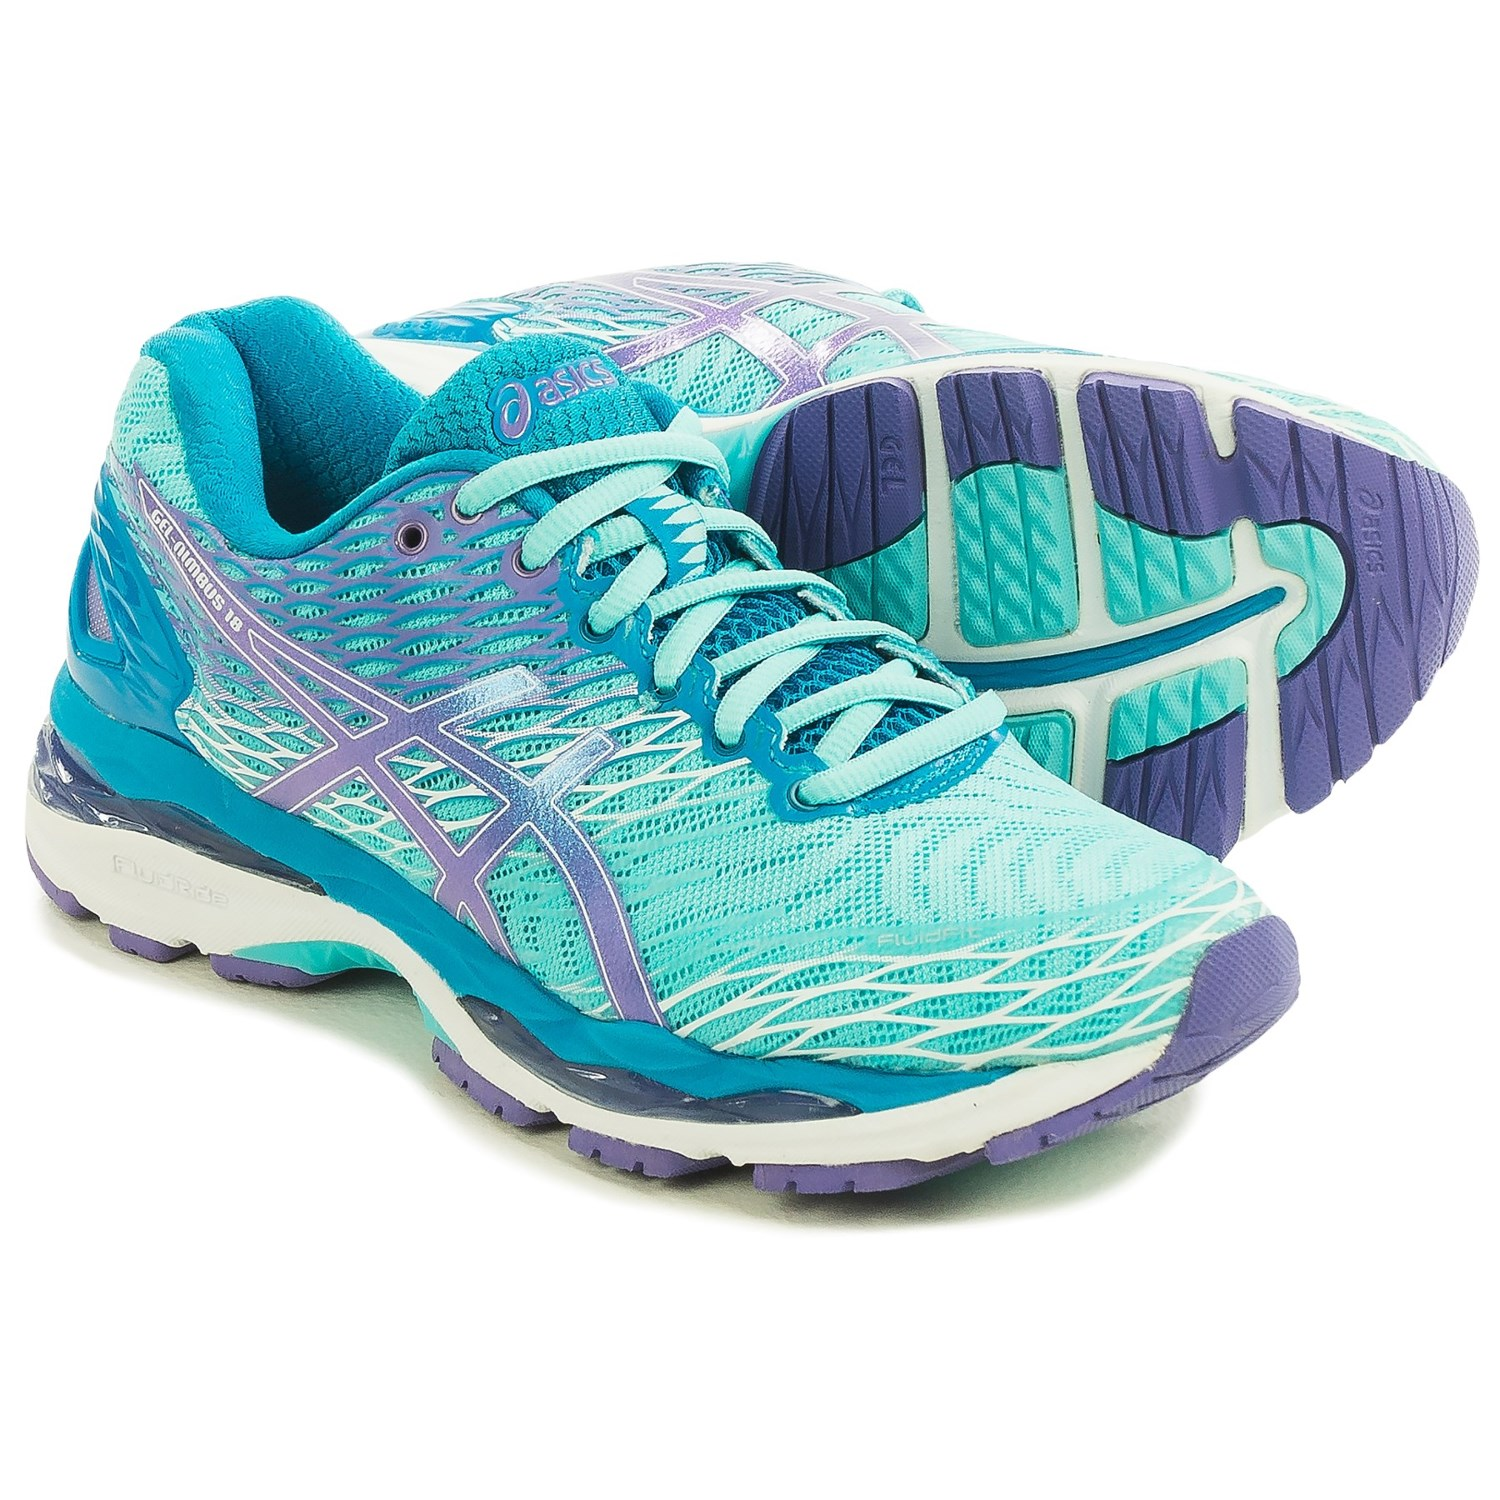 Running Shoes Clearance Asics